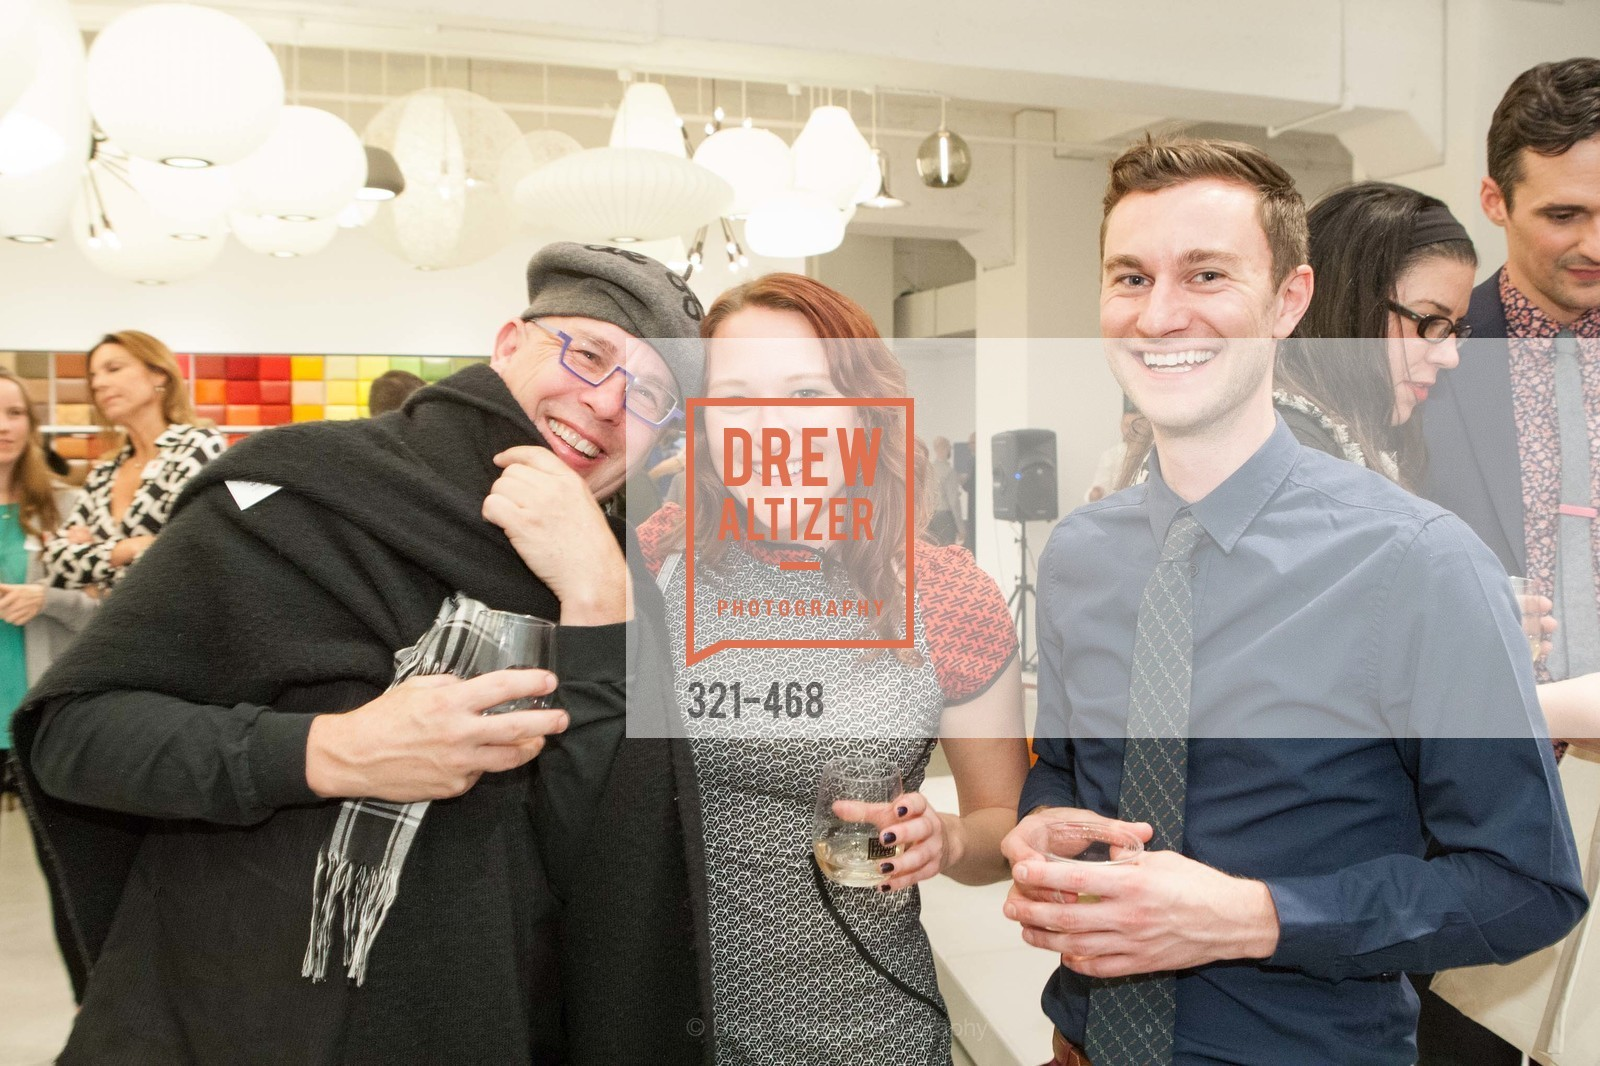 Vernon Theiss, Becca Reese, Bart Kraus, DESIGN WITHIN REACH Studio Opening, US. US, January 21st, 2014,Drew Altizer, Drew Altizer Photography, full-service agency, private events, San Francisco photographer, photographer california